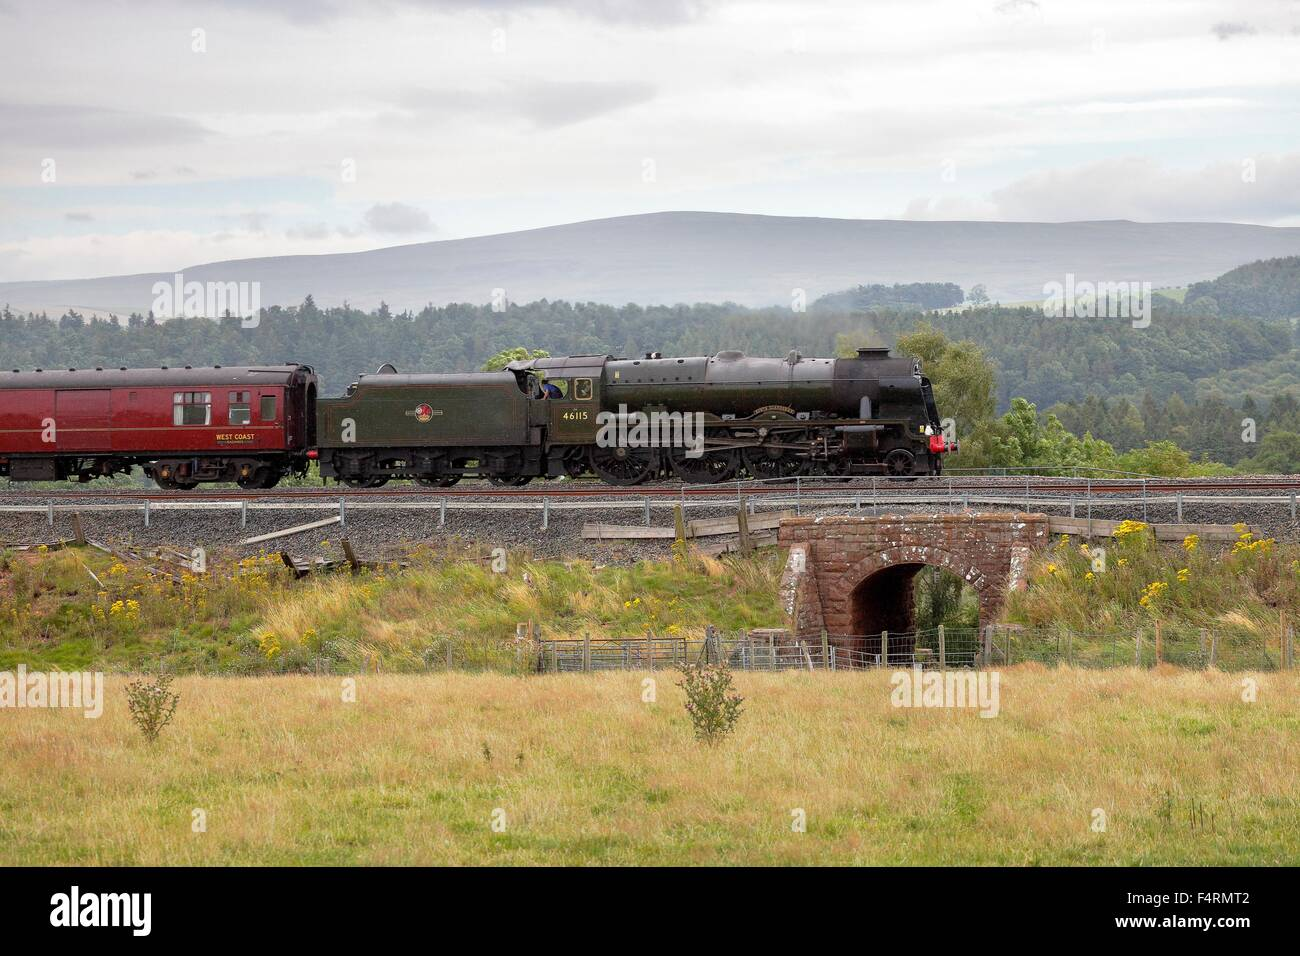 Steam train LMS Royal Scot Class 46115 Scots Guardsman on the Settle to Carlisle Railway Line near Lazonby, Eden - Stock Image